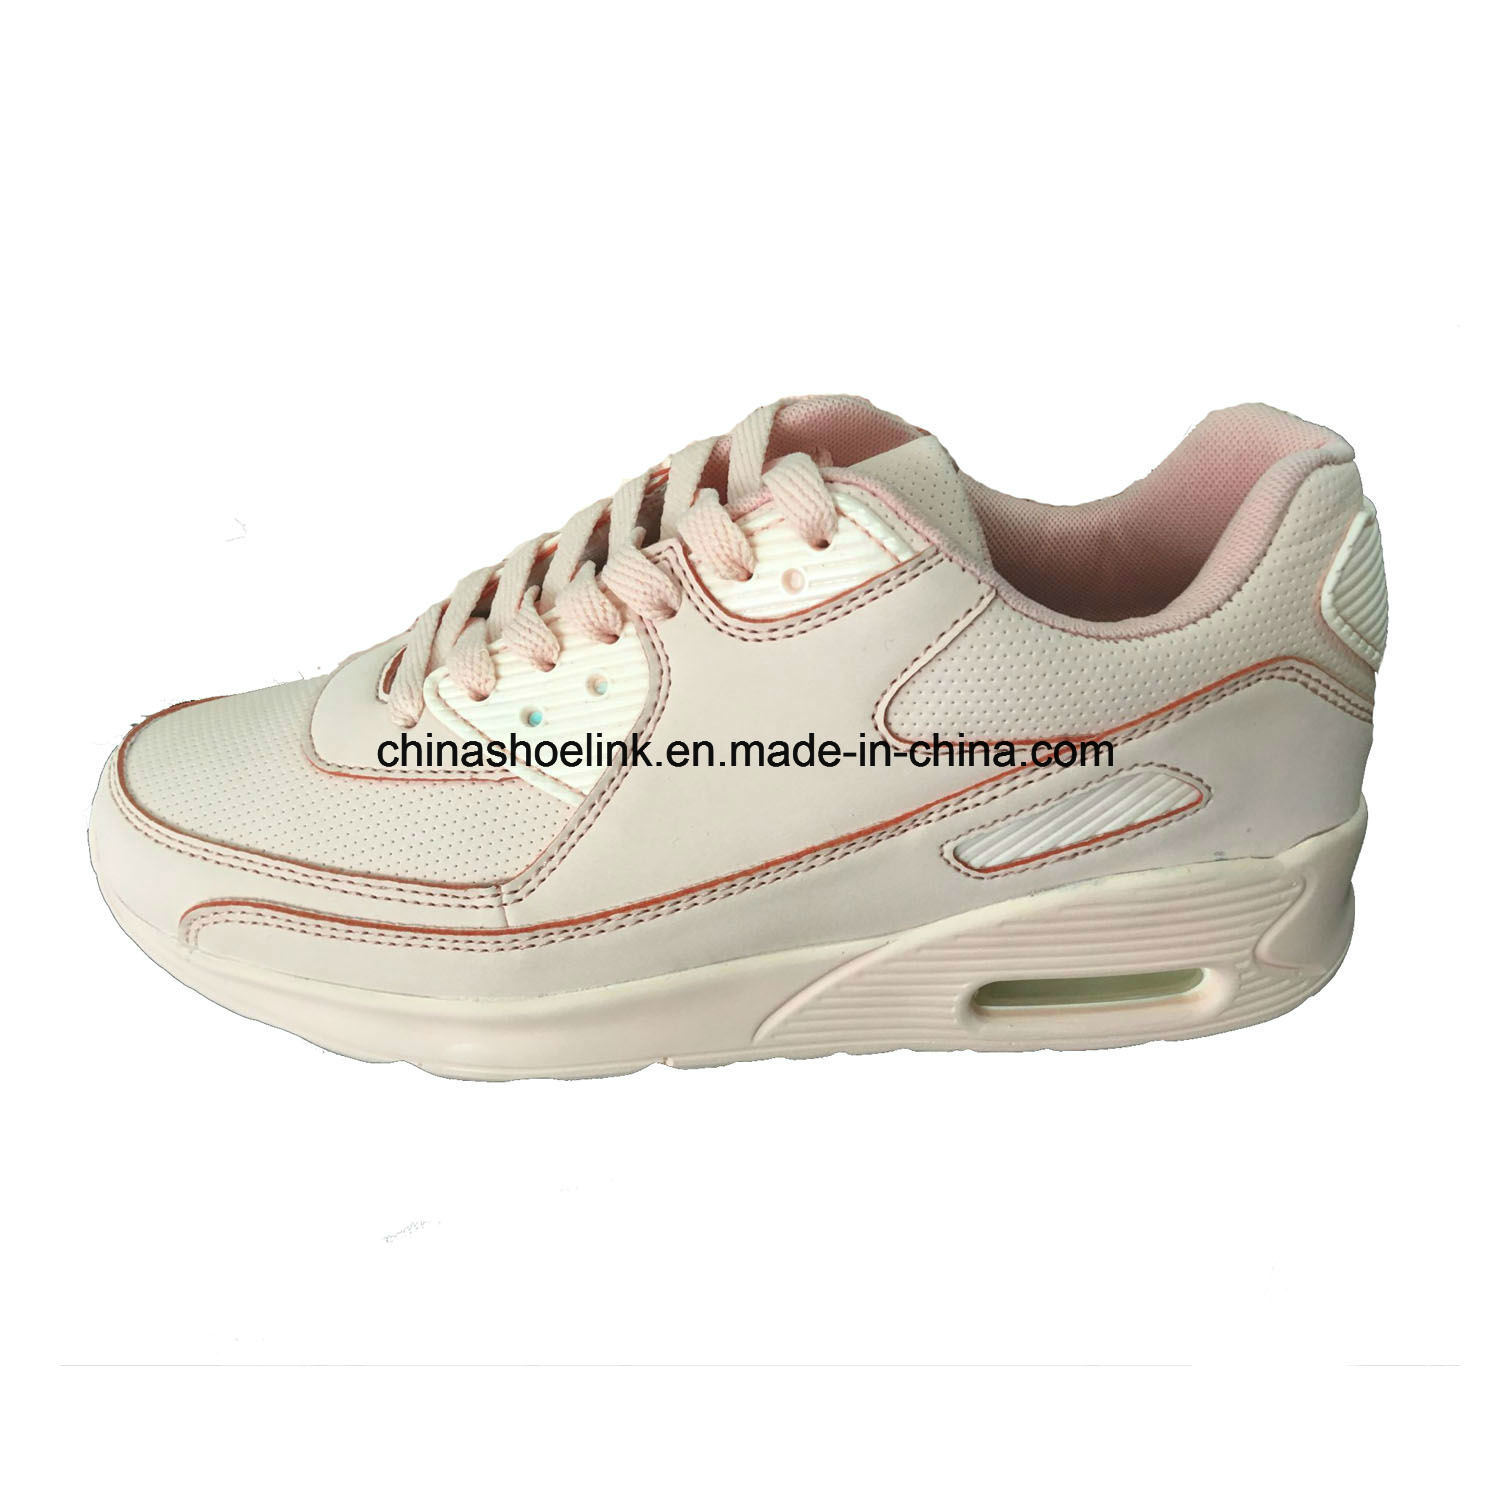 New Fashion Sport Atheletic Sneakers Casual Shoes for Women